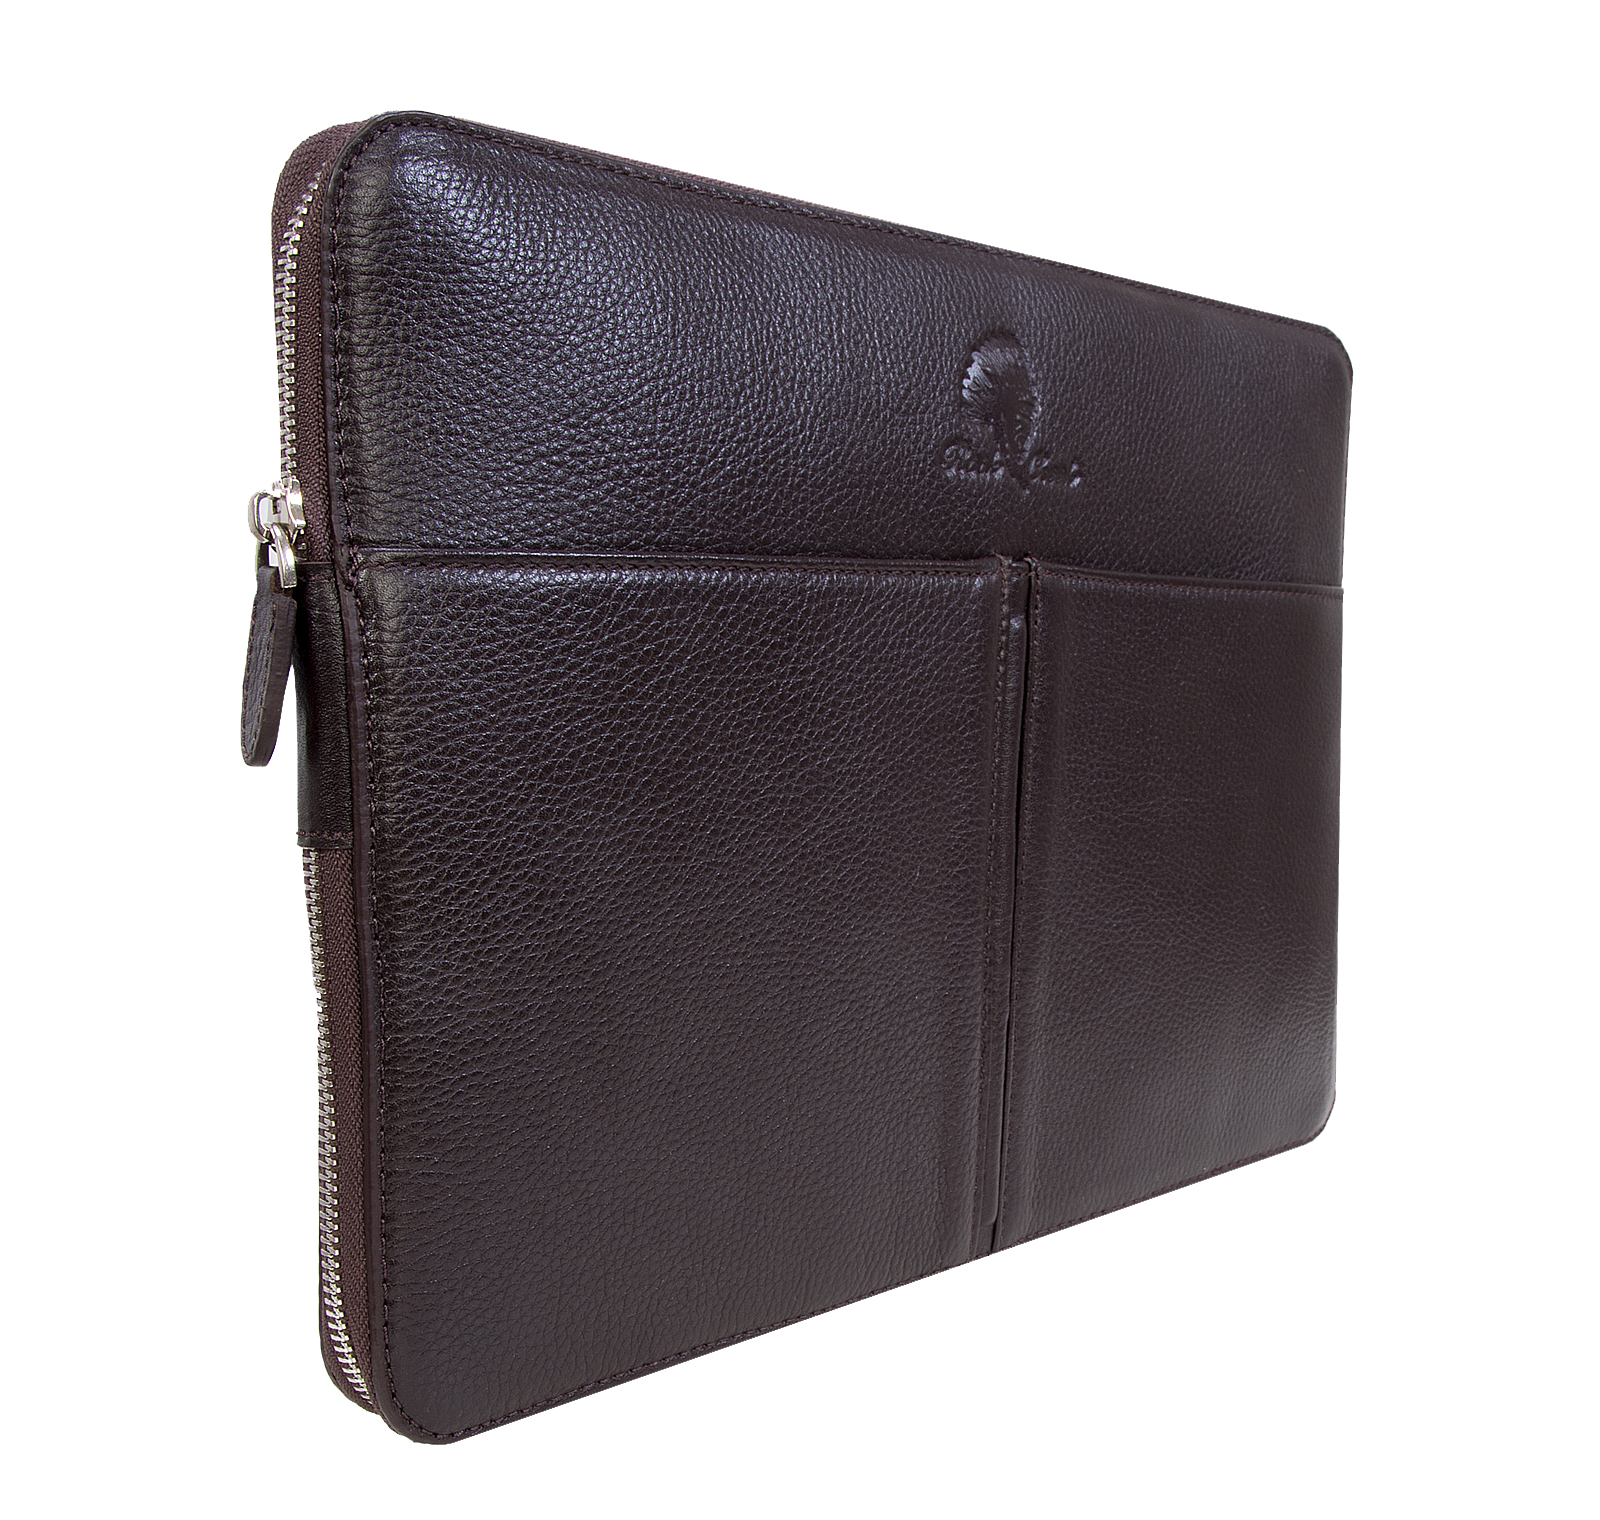 Leder Notebooktasche Laptoptasche 13 Creek Rock Zu Notebookhülle Hülle Details Laptop Zoll rCxeQBodW